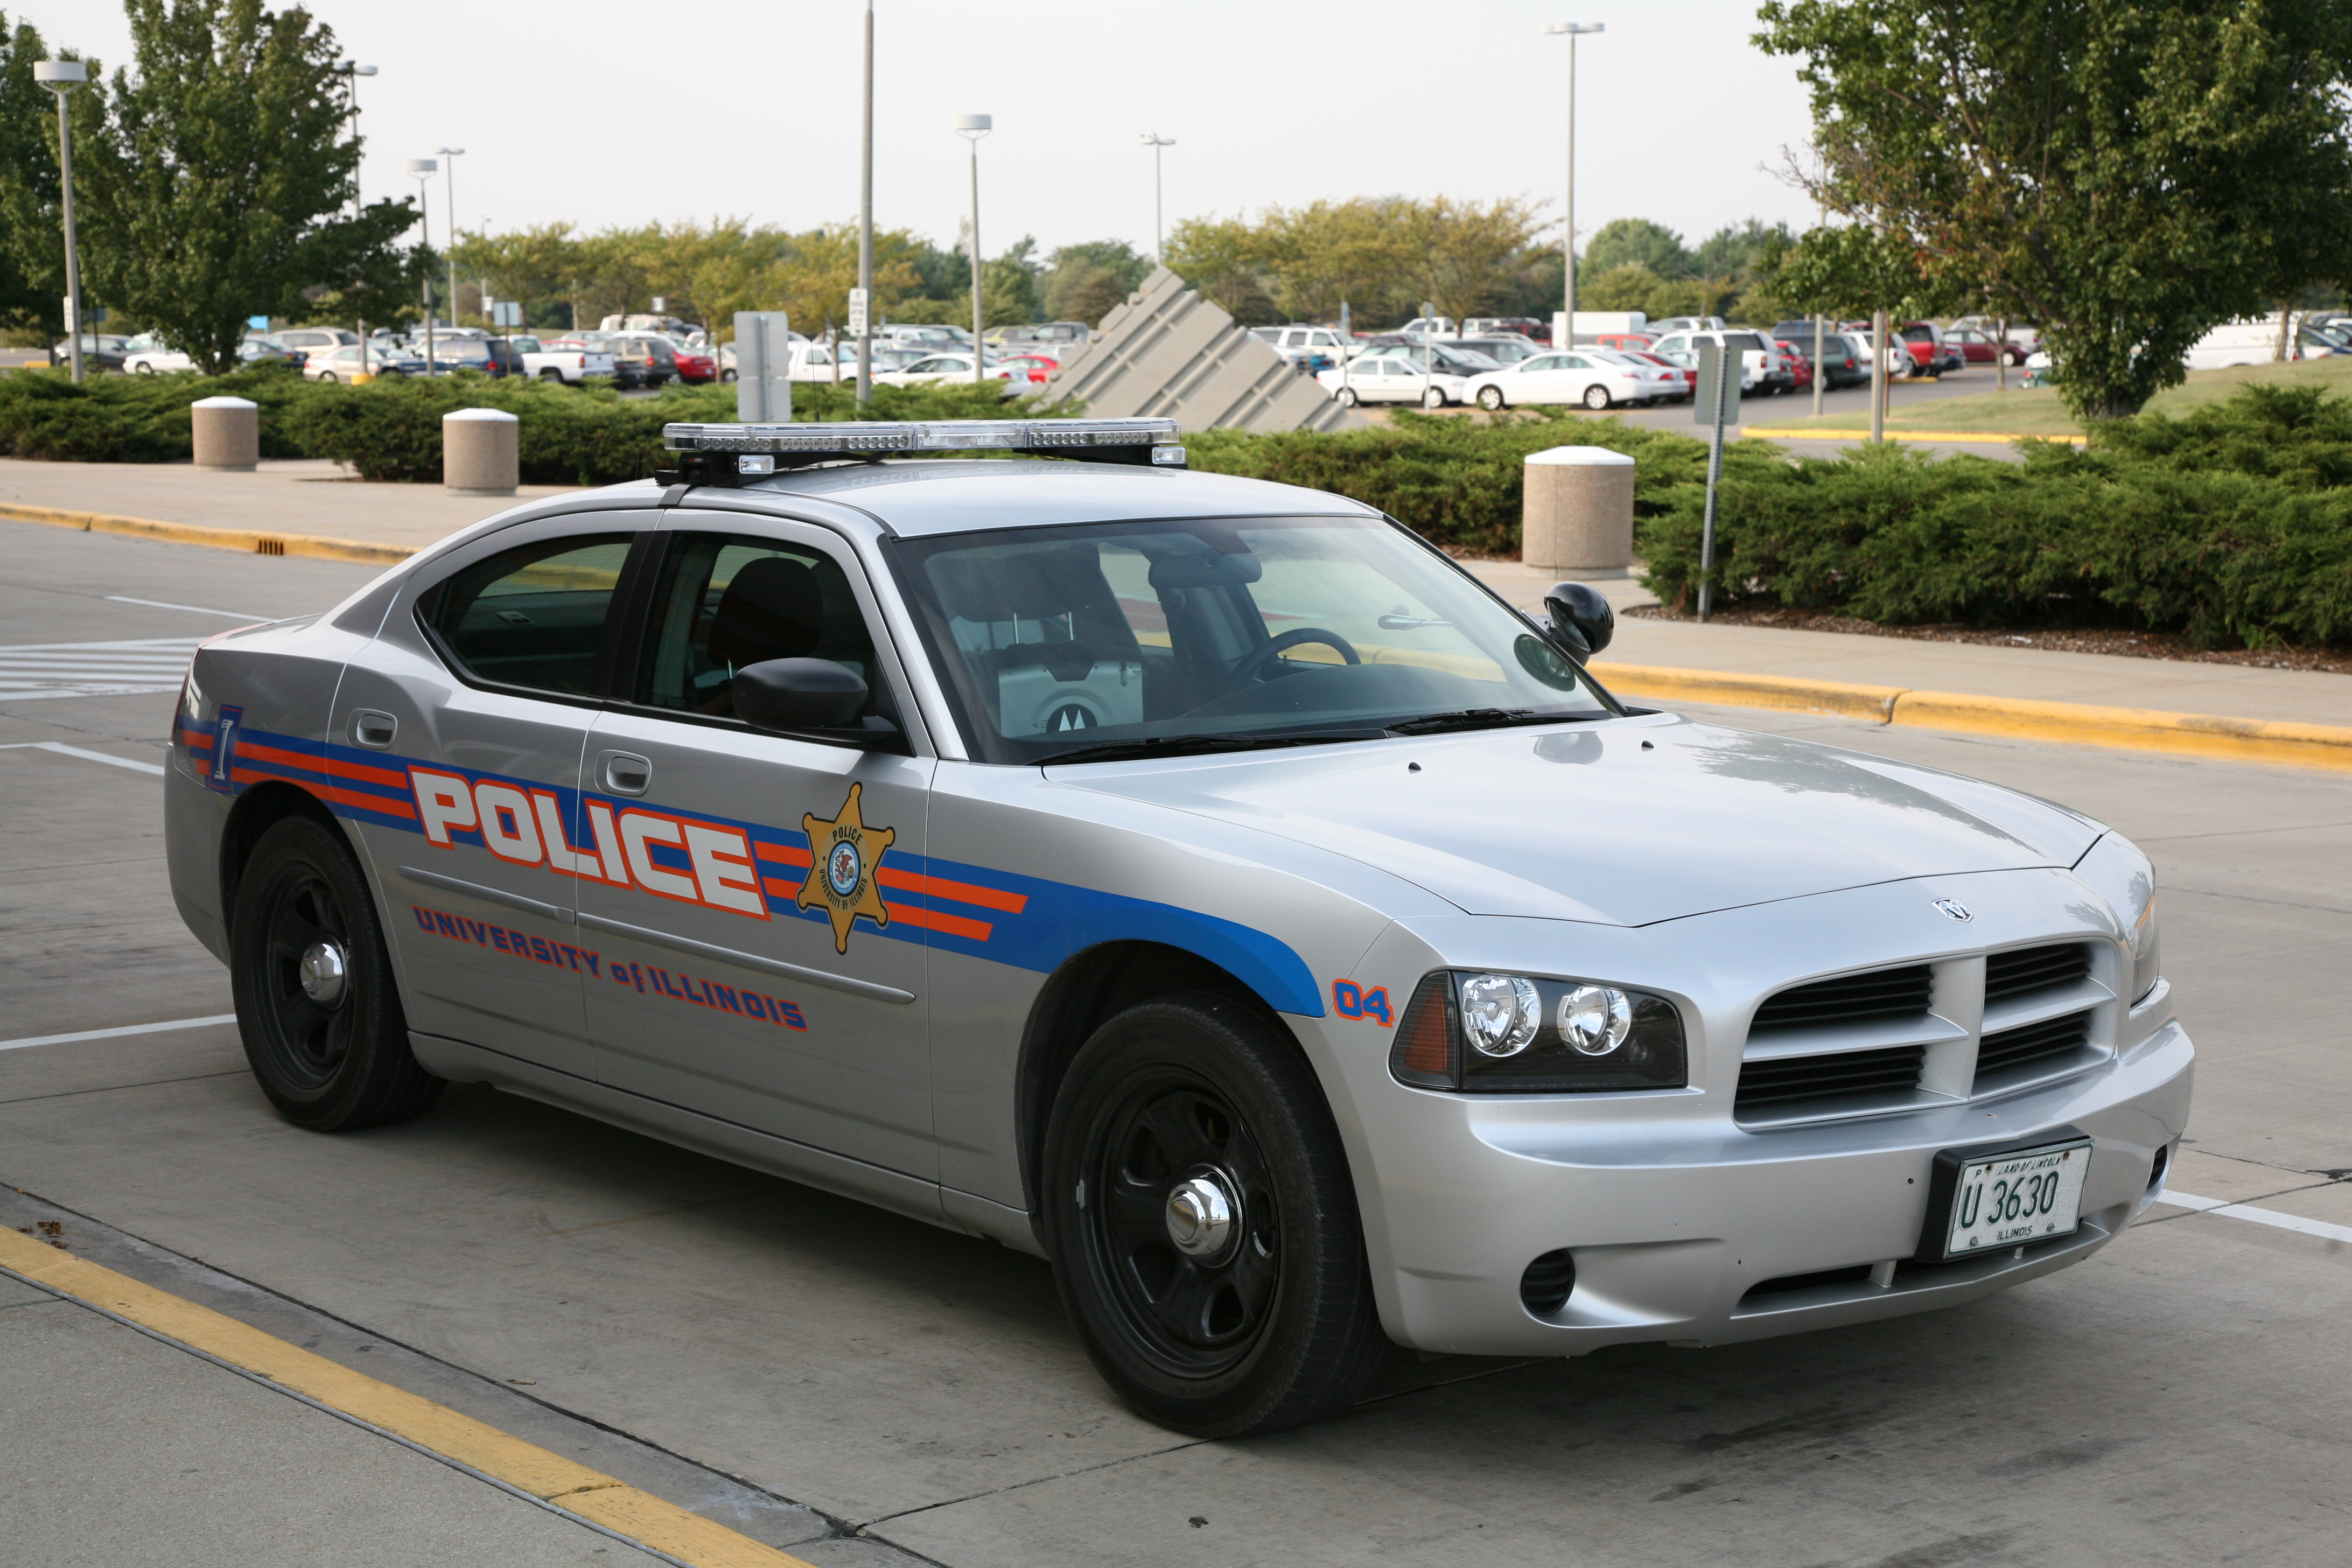 file dodge charger lx uiuc police wikimedia commons red car police car car logo. Black Bedroom Furniture Sets. Home Design Ideas